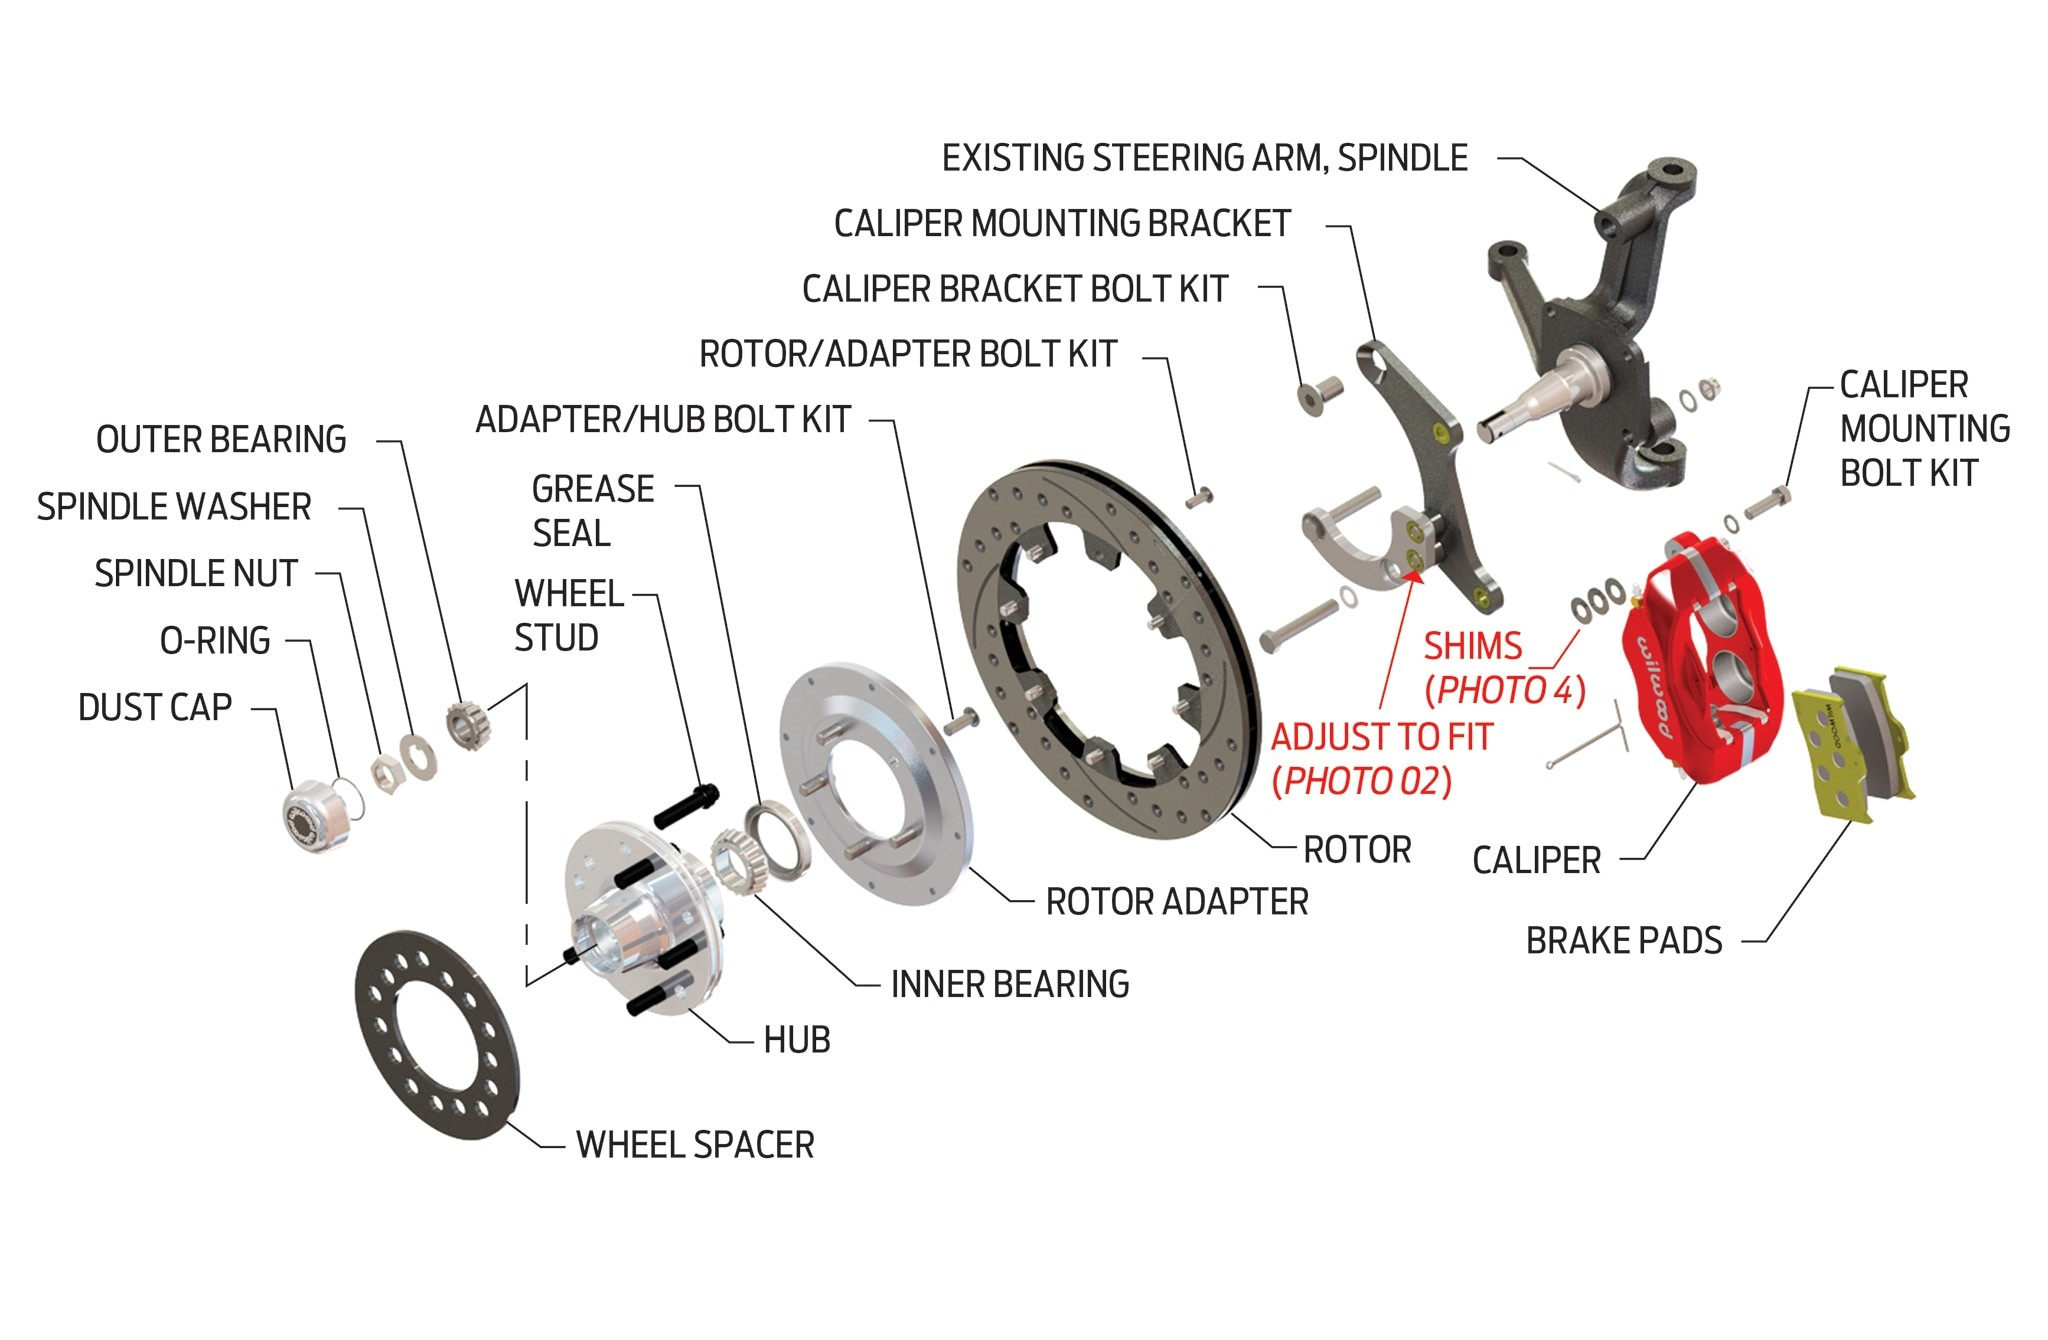 Disc Brake Schematic Diagram Hot Rod to the Rescue Fully Engineered 1955 Chevy Disc Brake Swap Of Disc Brake Schematic Diagram